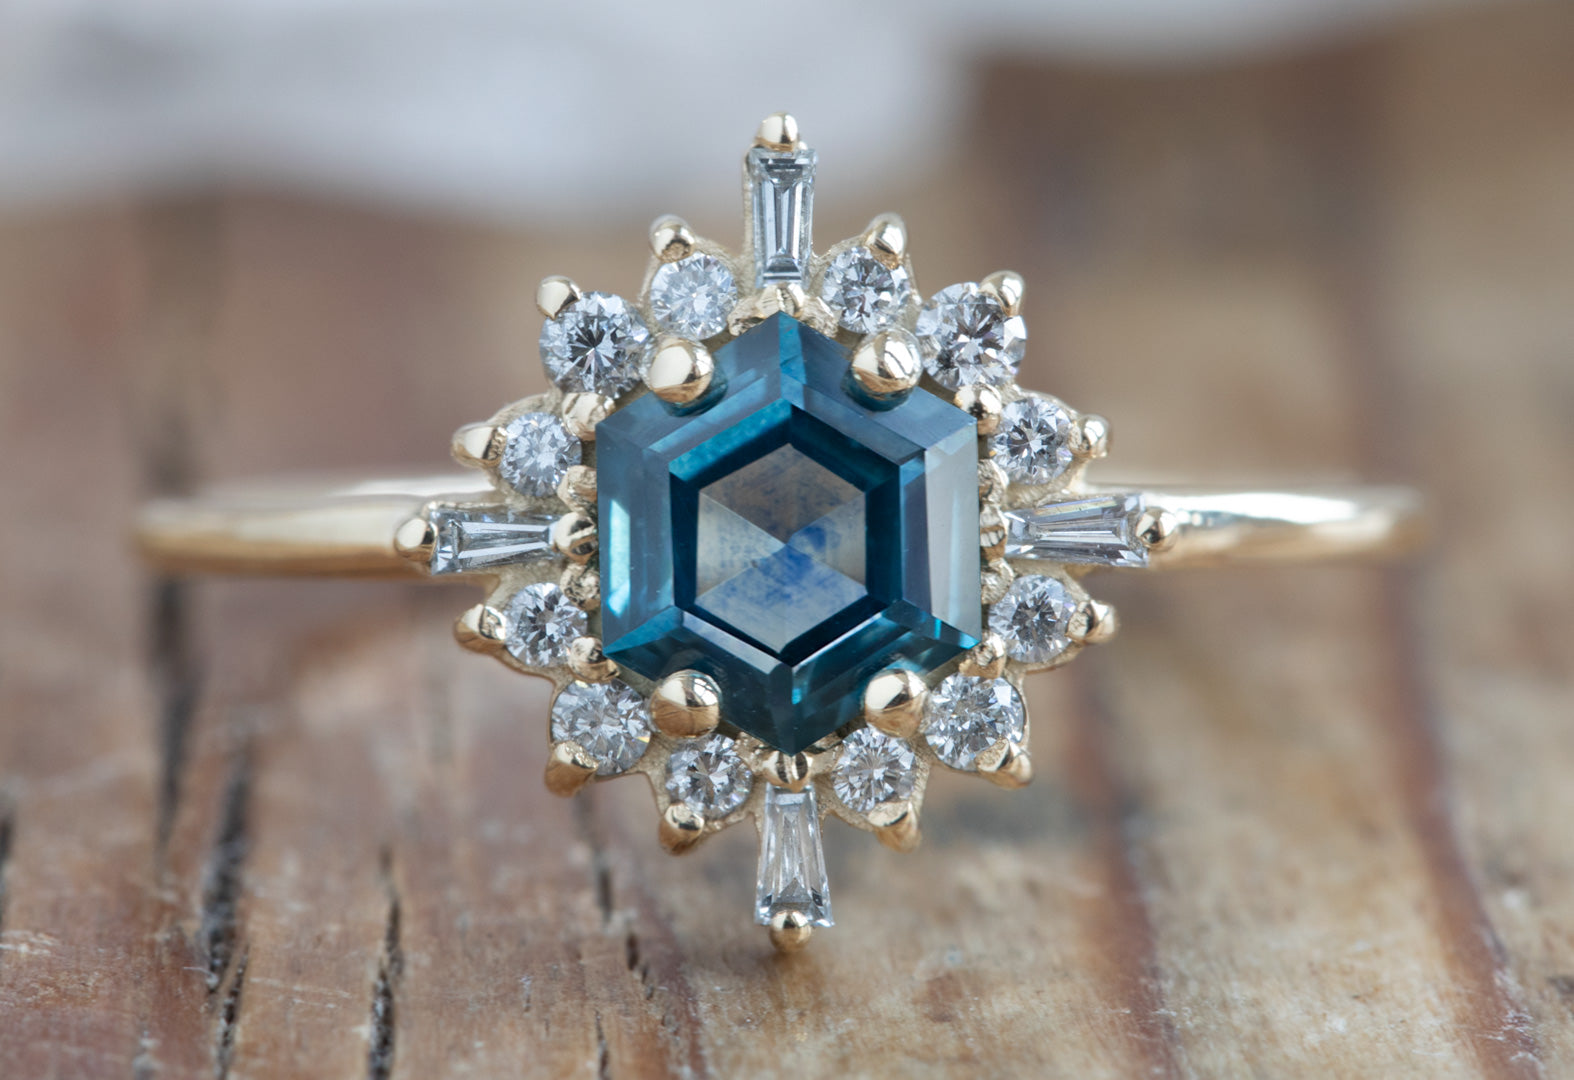 Hexagon Cut Montana Sapphire Engagement Ring with Vintage Halo